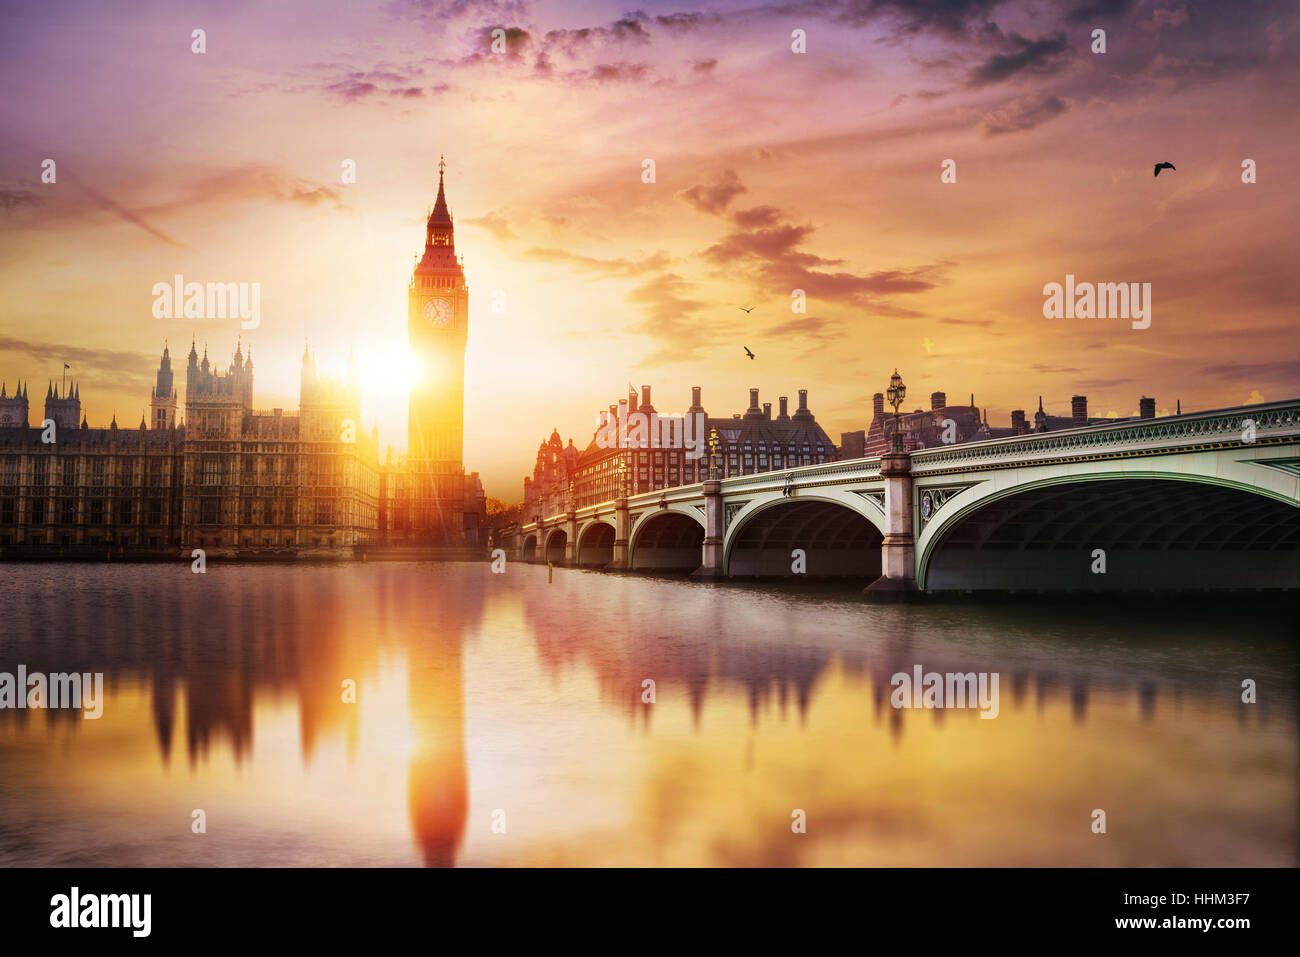 Big Ben und Westminster Bridge in der Dämmerung, London, UK Stockbild